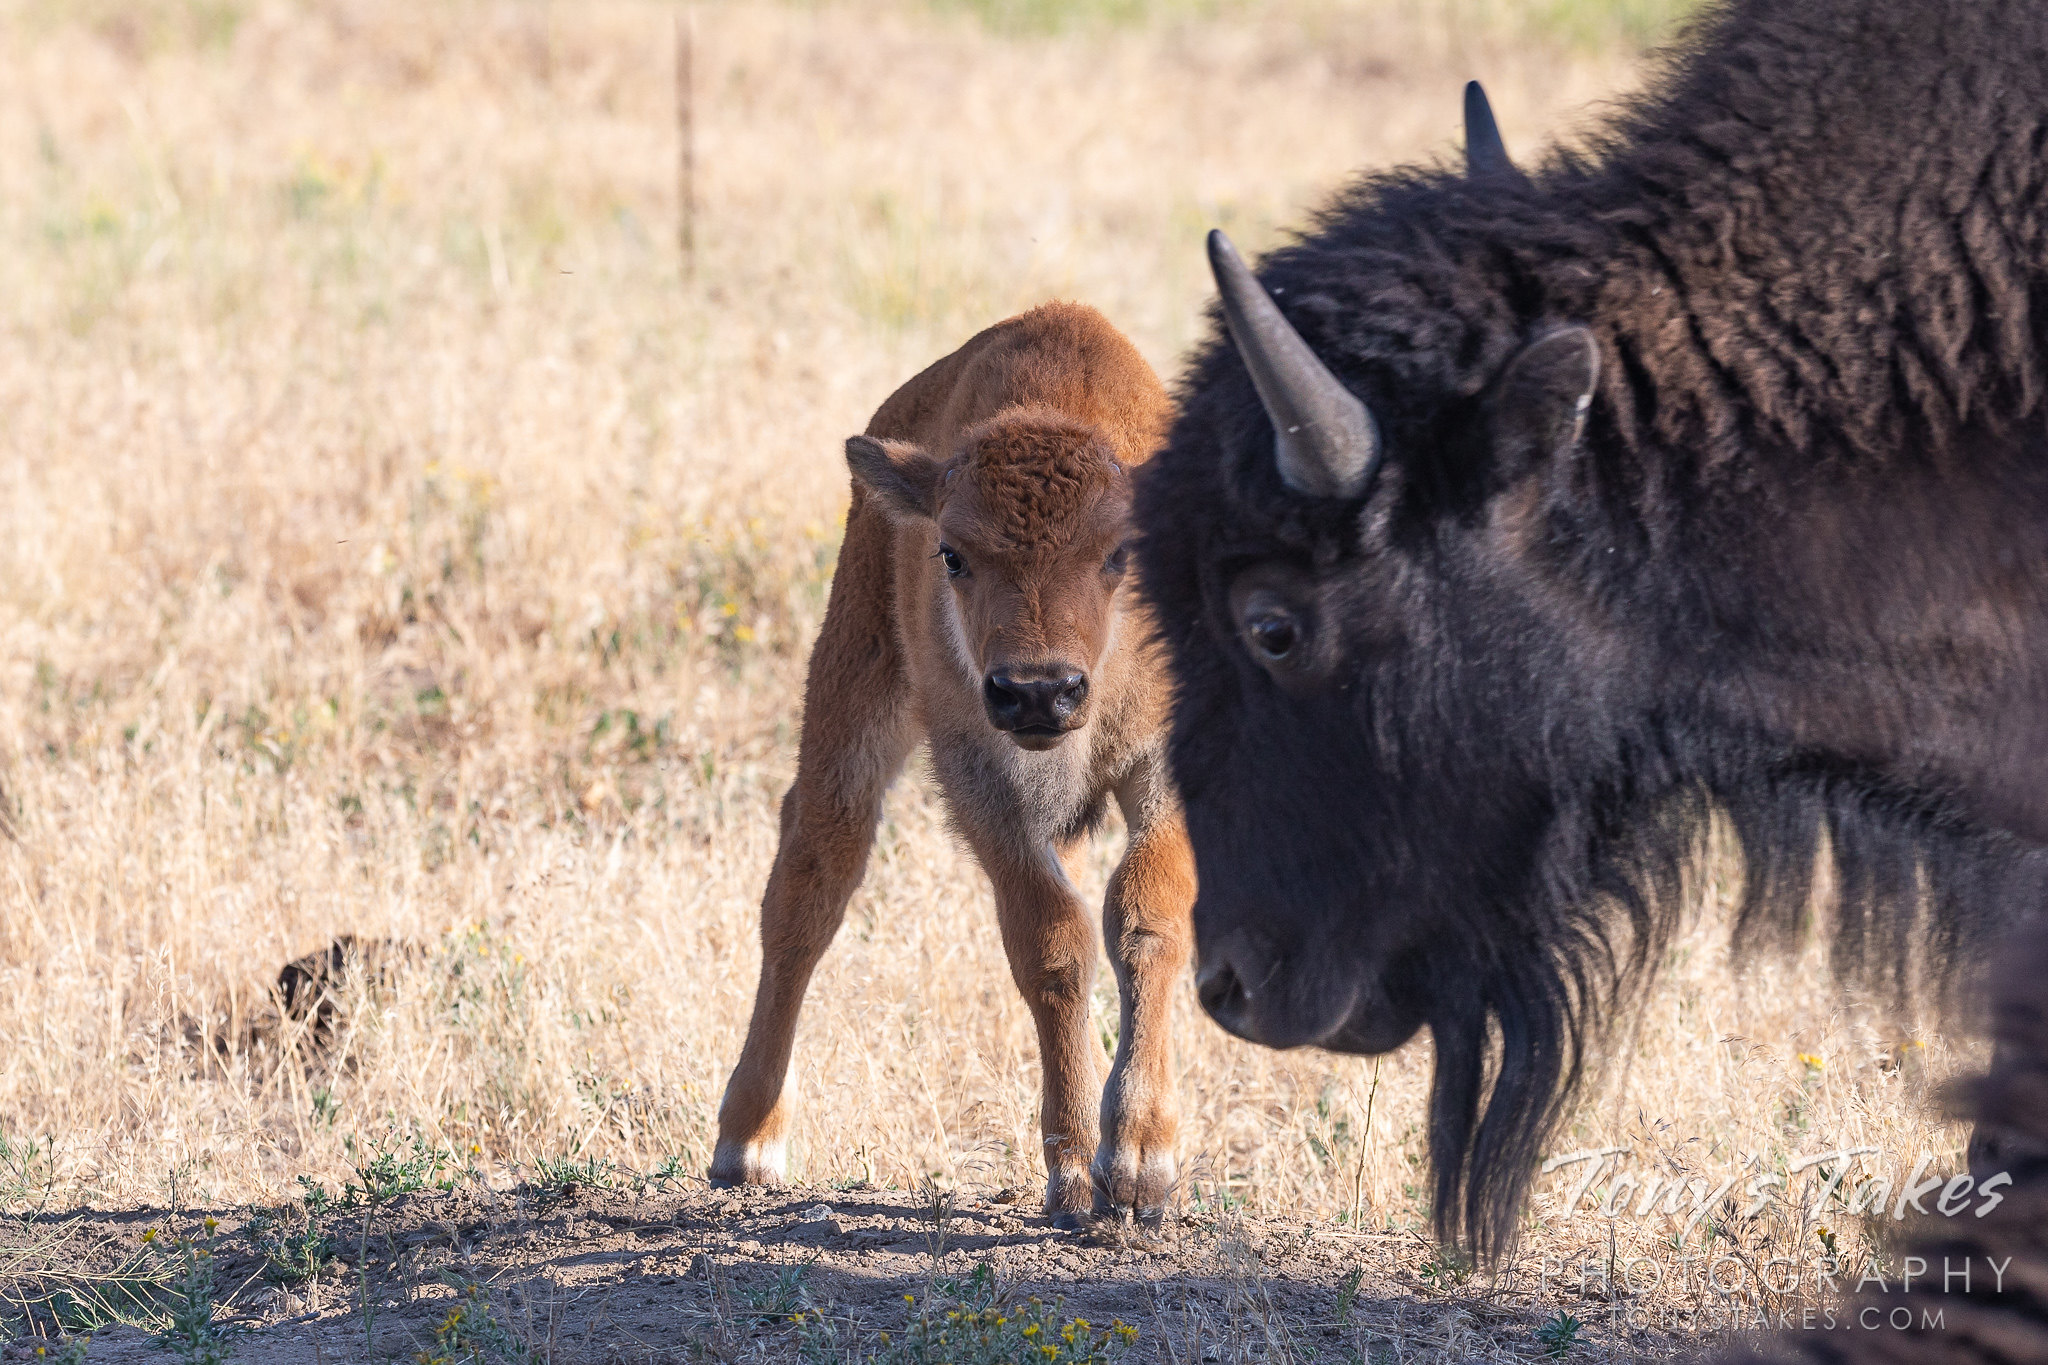 A bison calf keeps watch from behind its mother. (Tony's Takes)